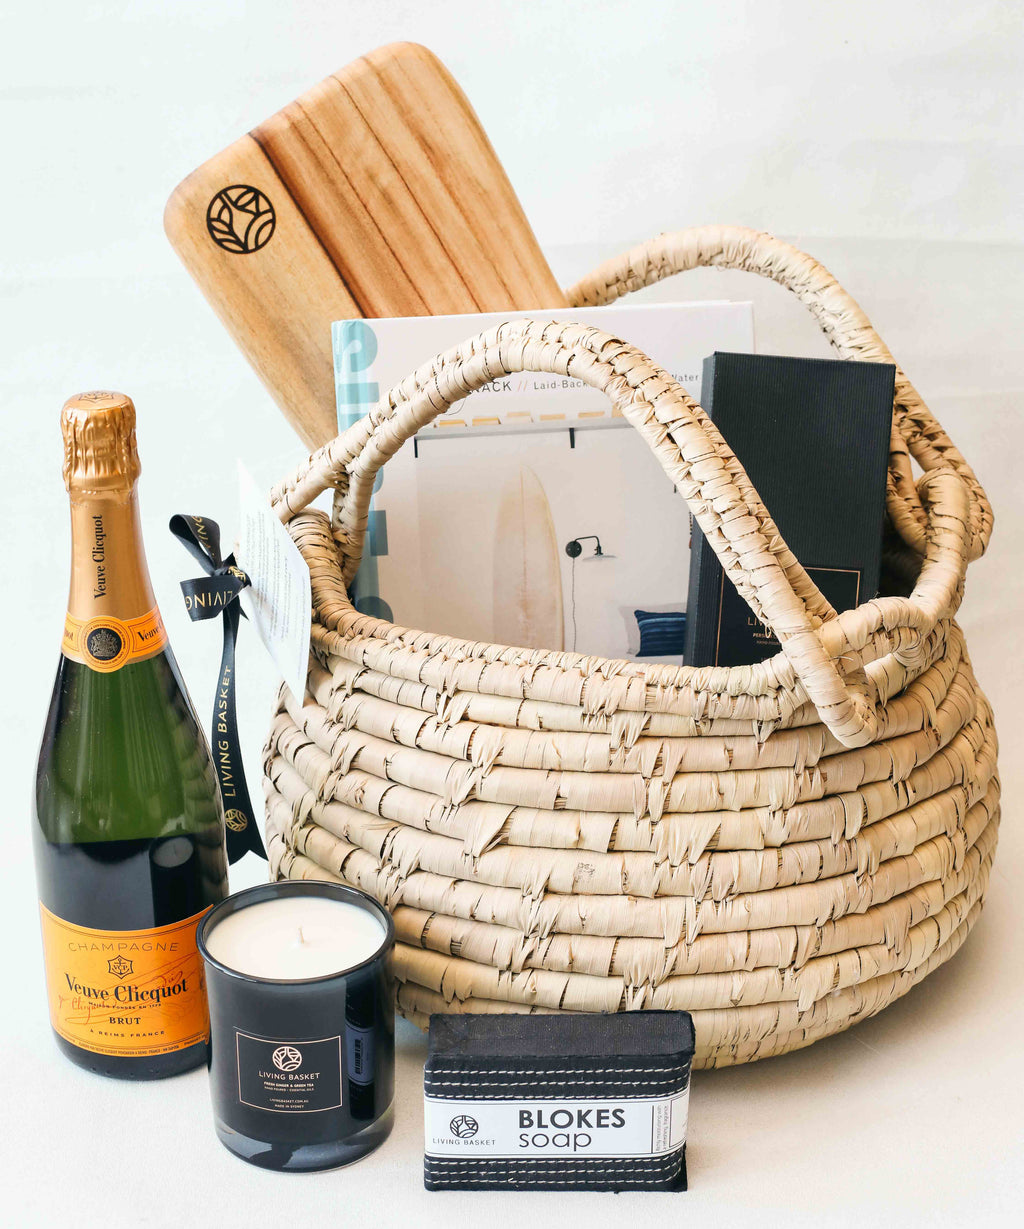 LUXURY BEACHSIDE FAMILY CELEBRATION BASKET